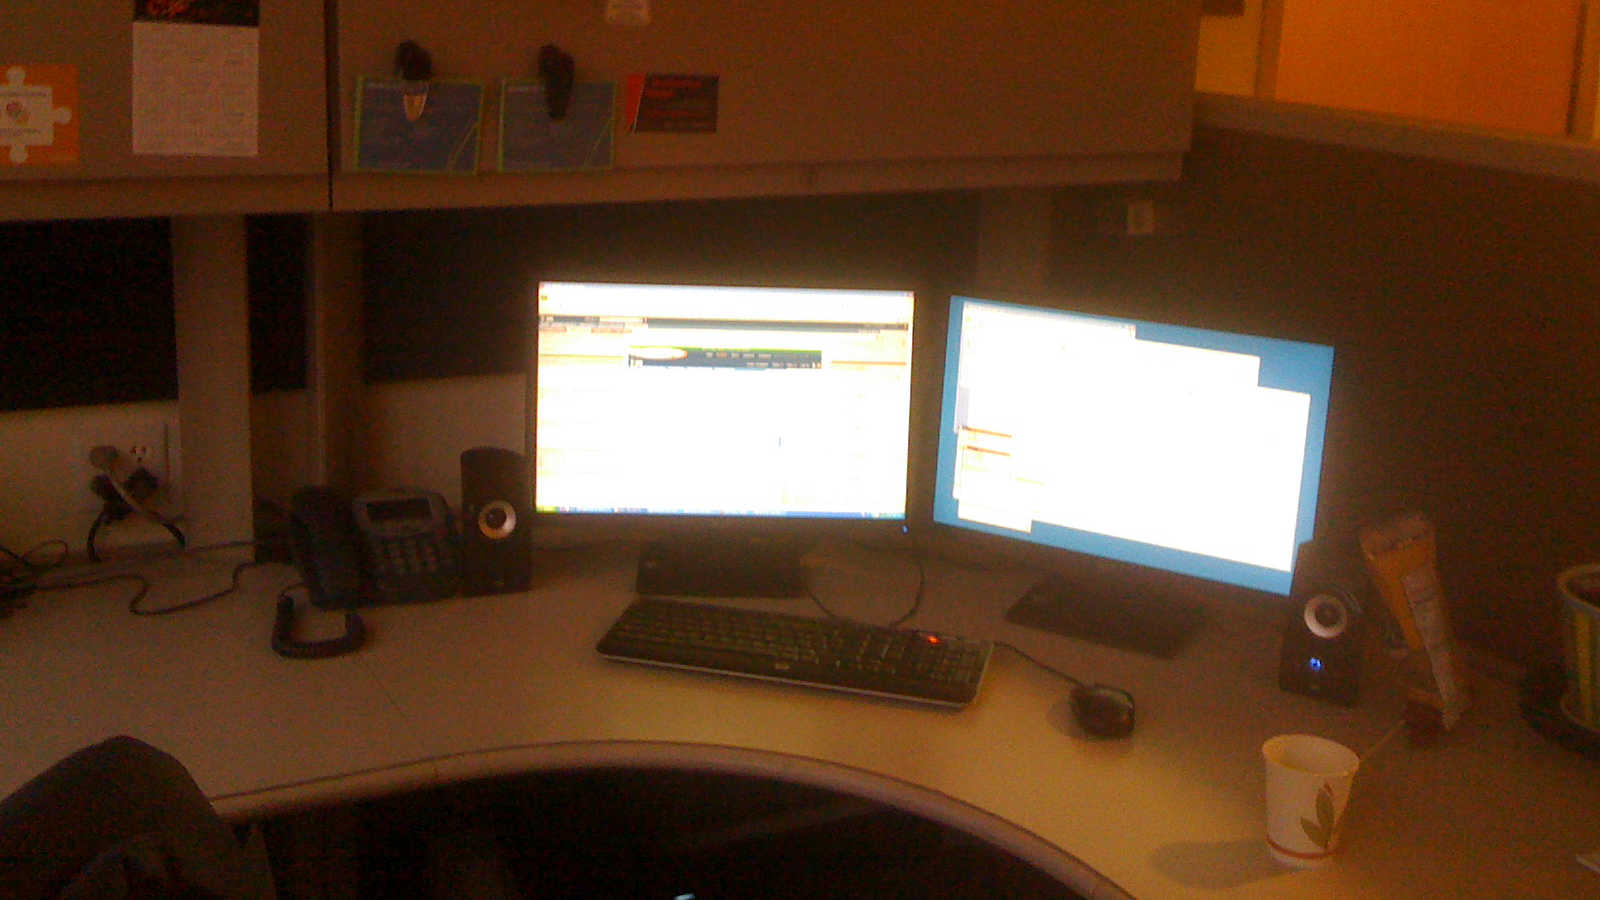 My new workspace in 2009 just before Christmas.